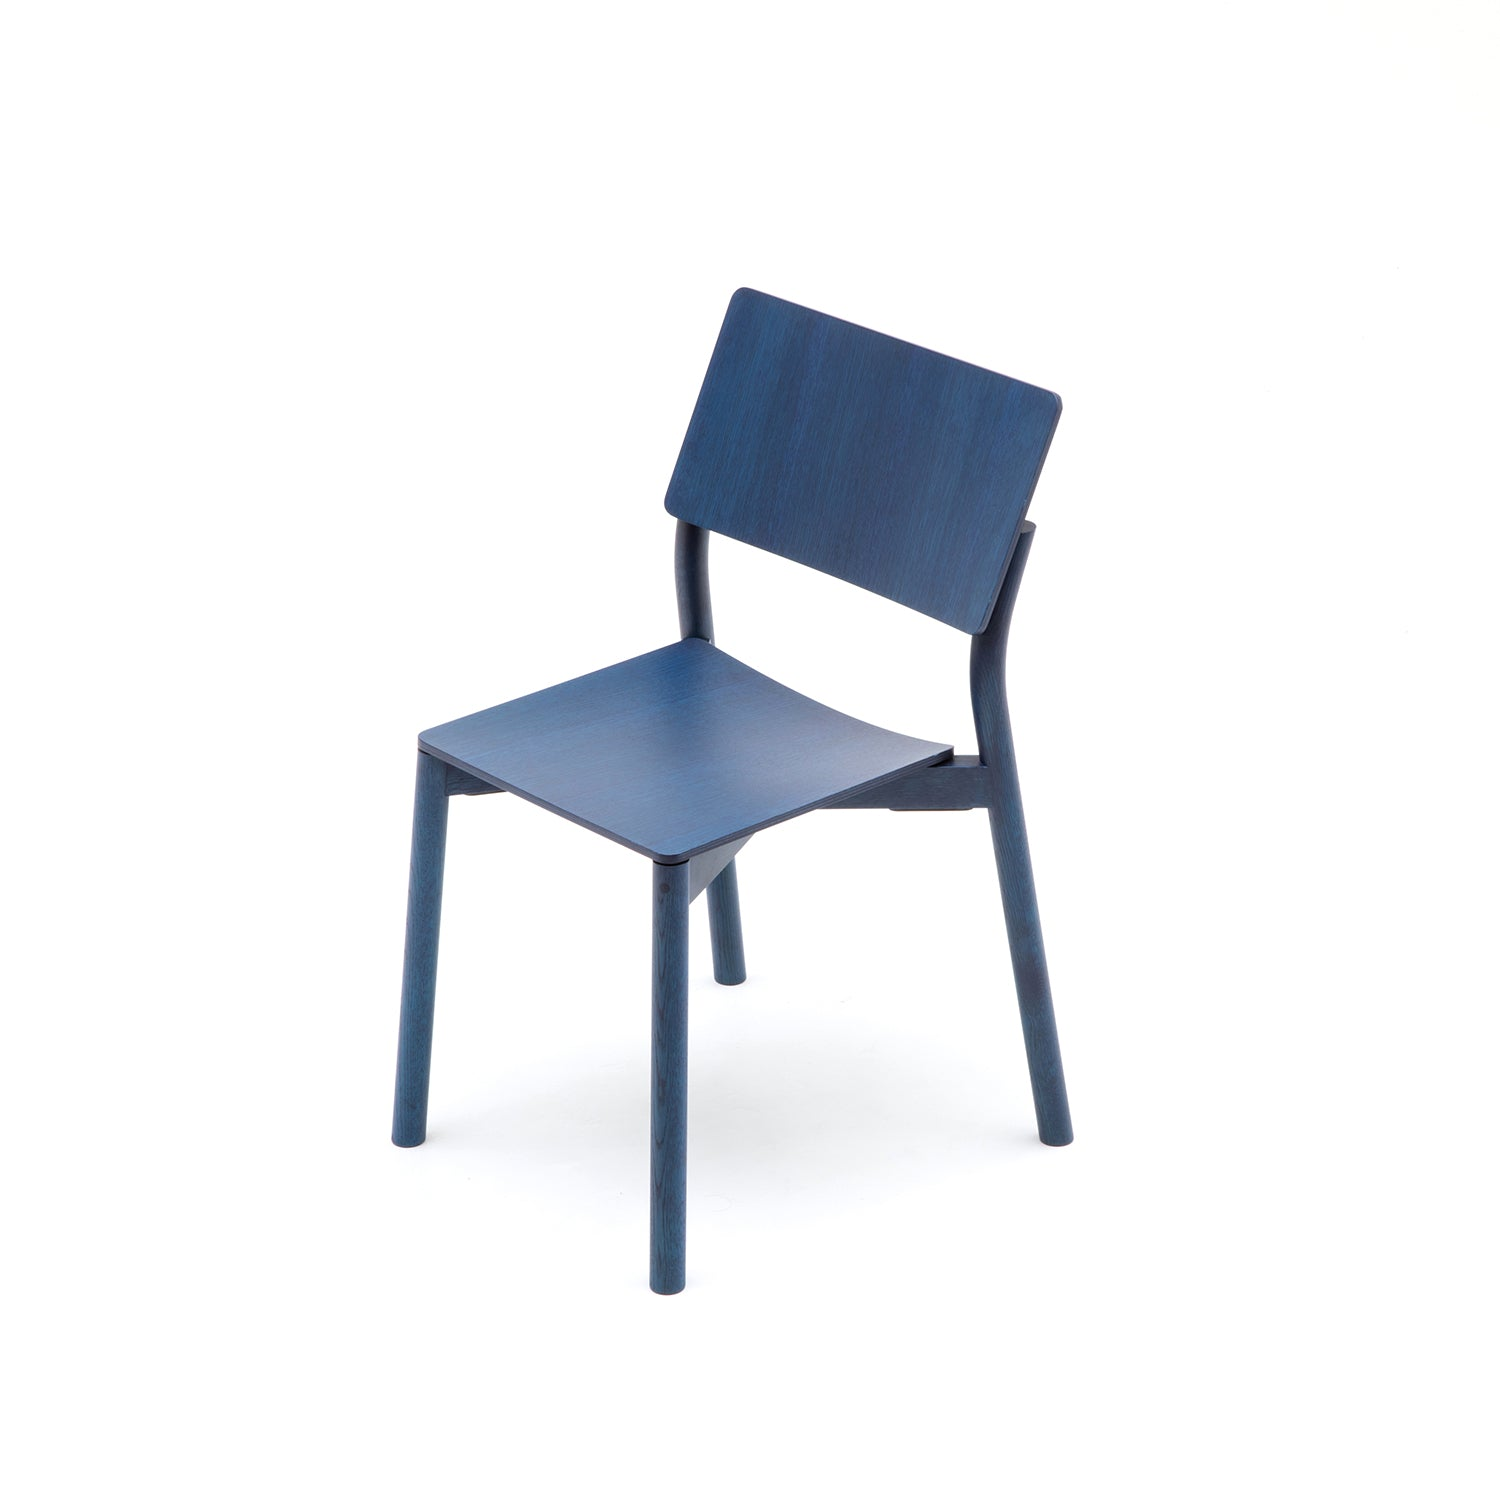 Panorama Chair: Indigo Blue